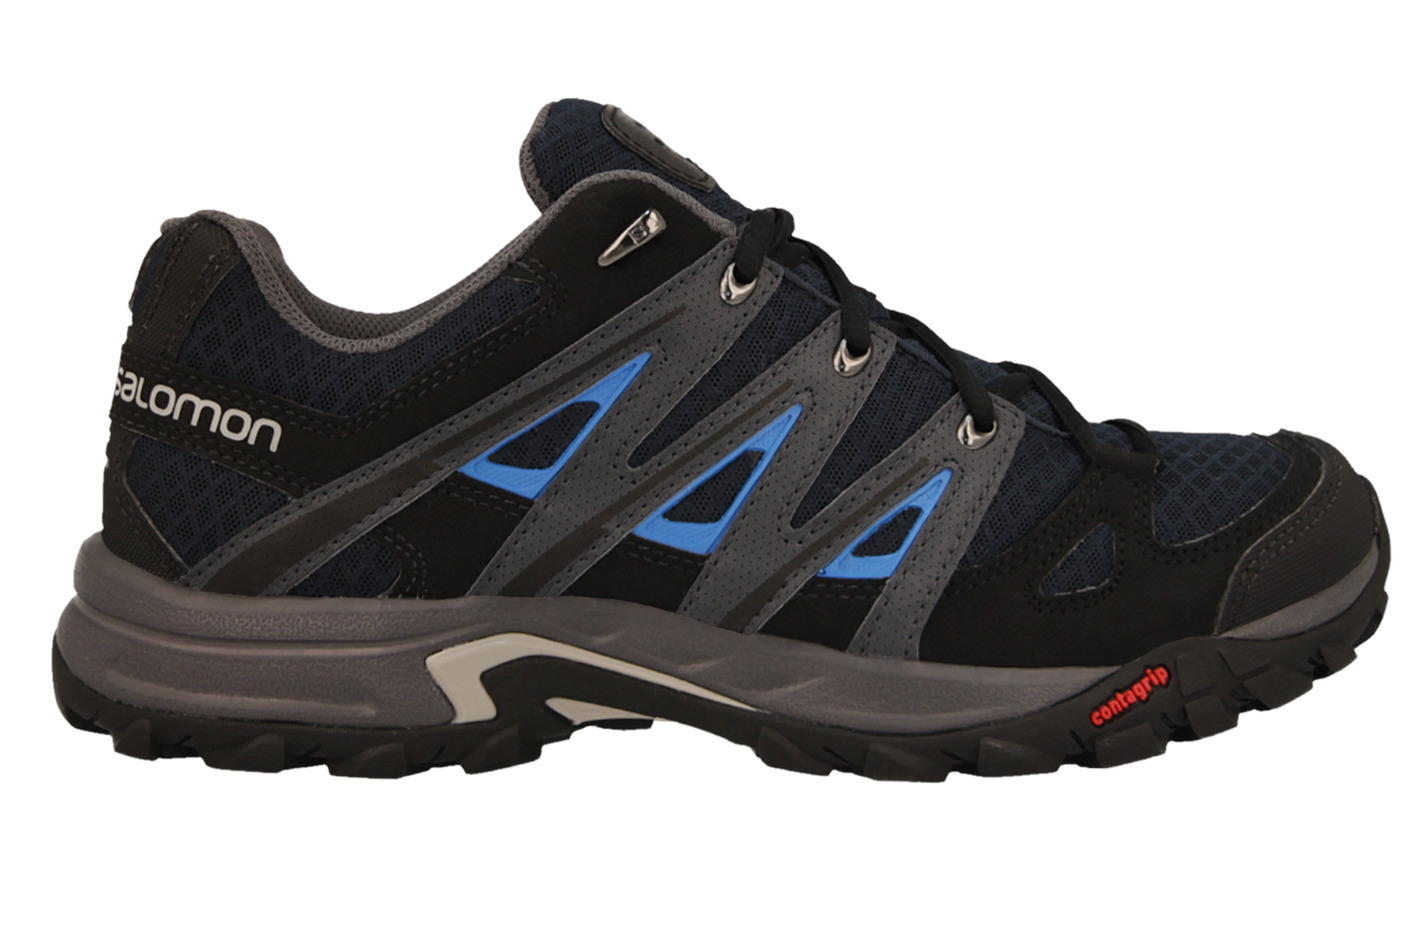 https://yessport.pl/pol_pl_BUTY-SALOMON-ESKAPE-AERO-370740-7124_1.jpg